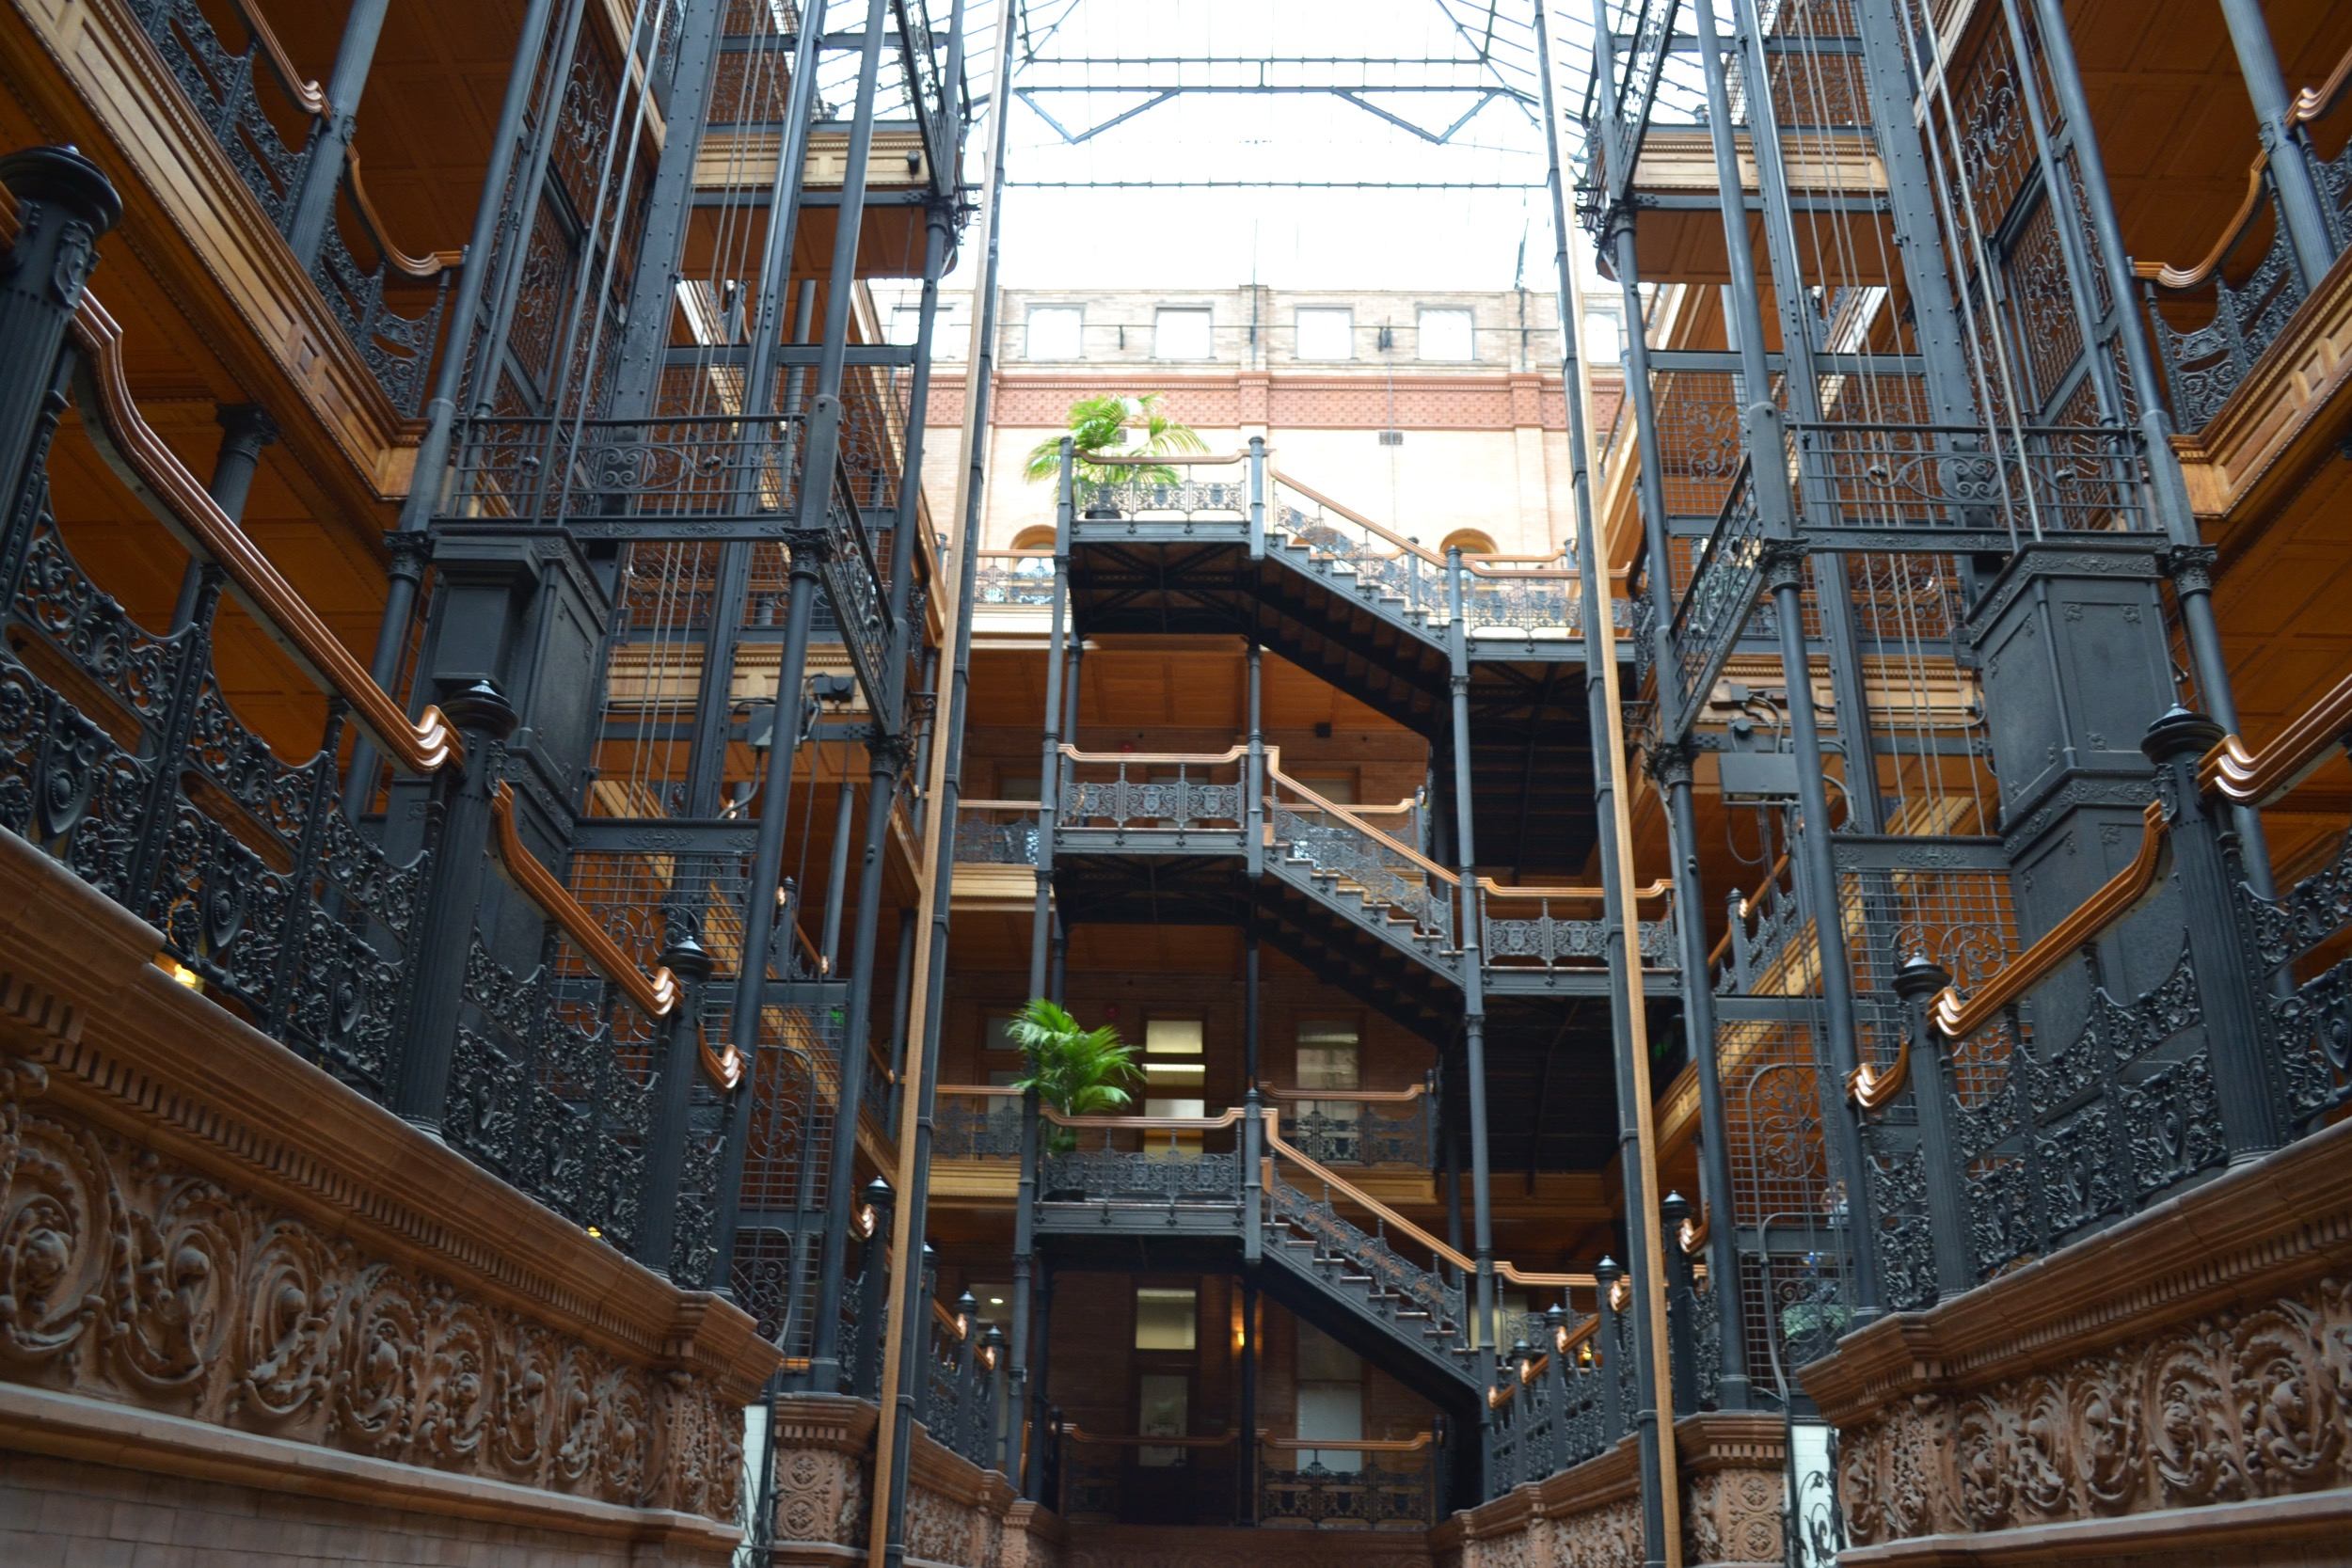 The Bradbury Building is a short walk from Grand Central and a fun stop.